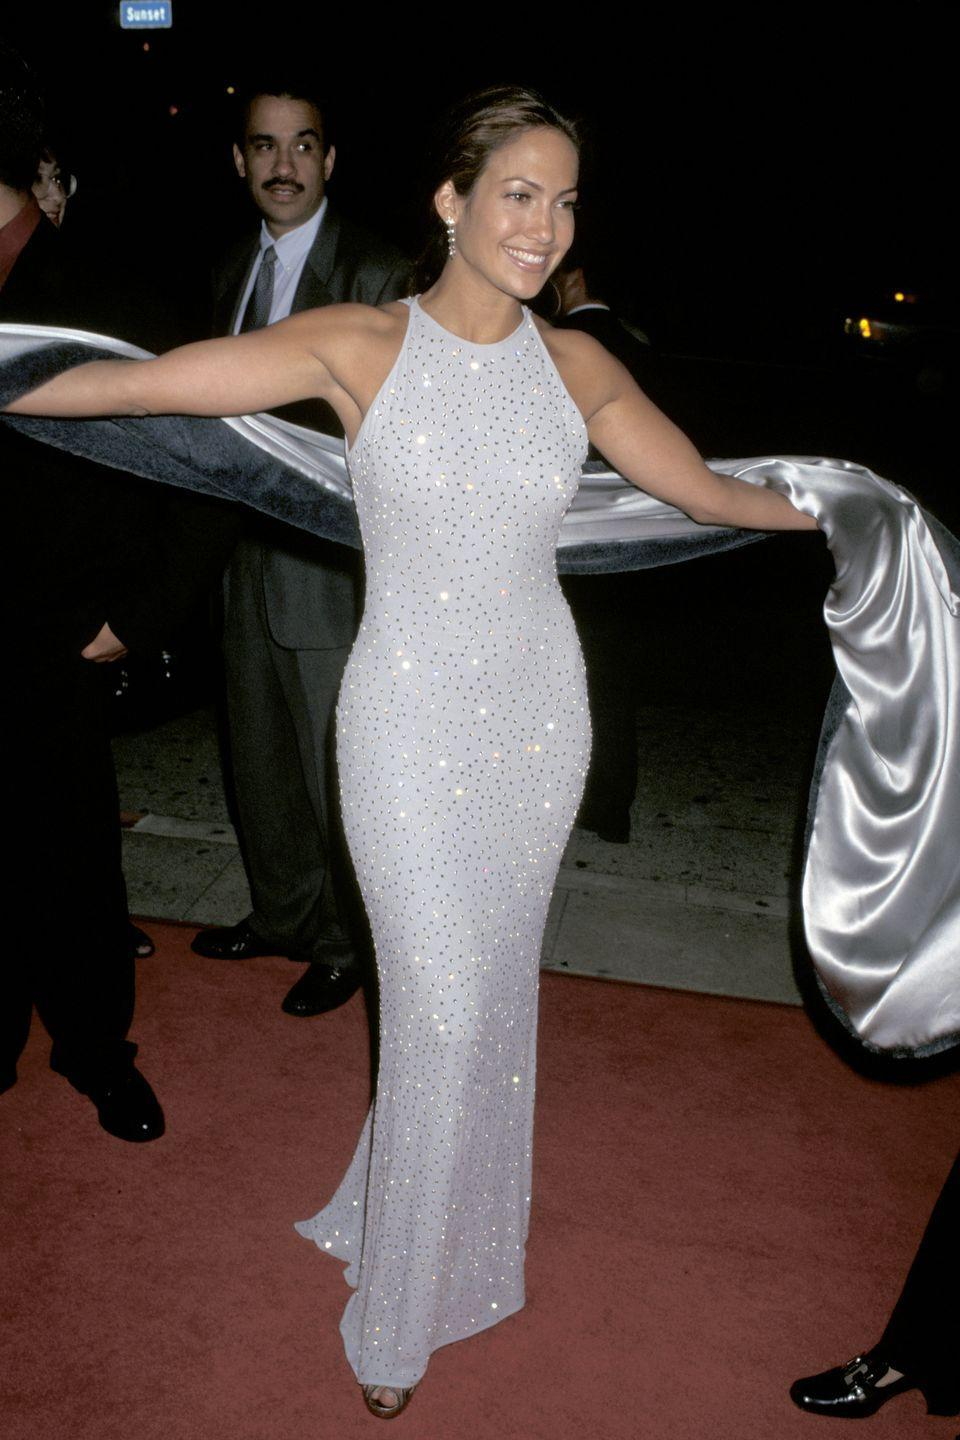 <p><strong>When: </strong>March 1997</p><p><strong>Where: </strong>Selena premiere</p><p><strong>Wearing: </strong>A crystal-embellished gown</p>